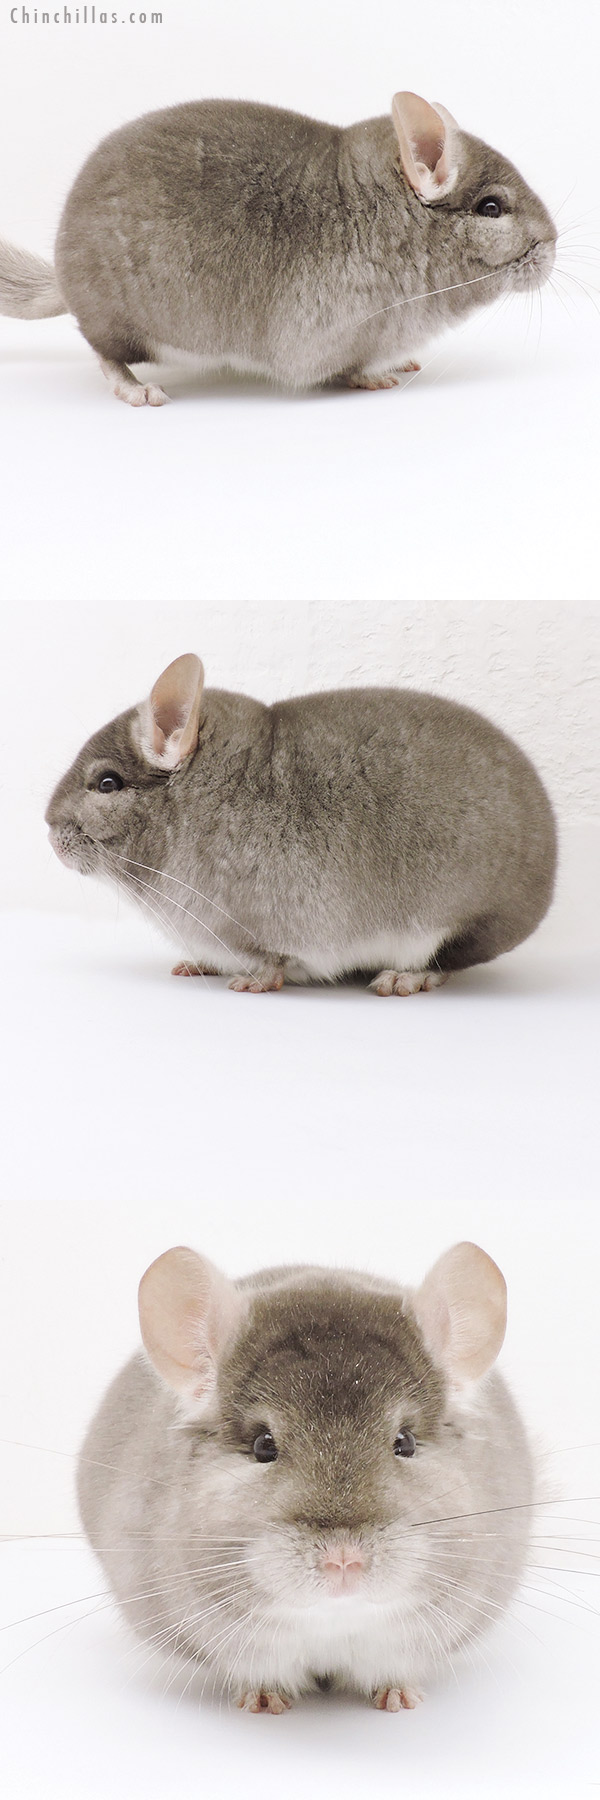 19227 Blocky Herd Improvement Quality Beige Male Chinchilla